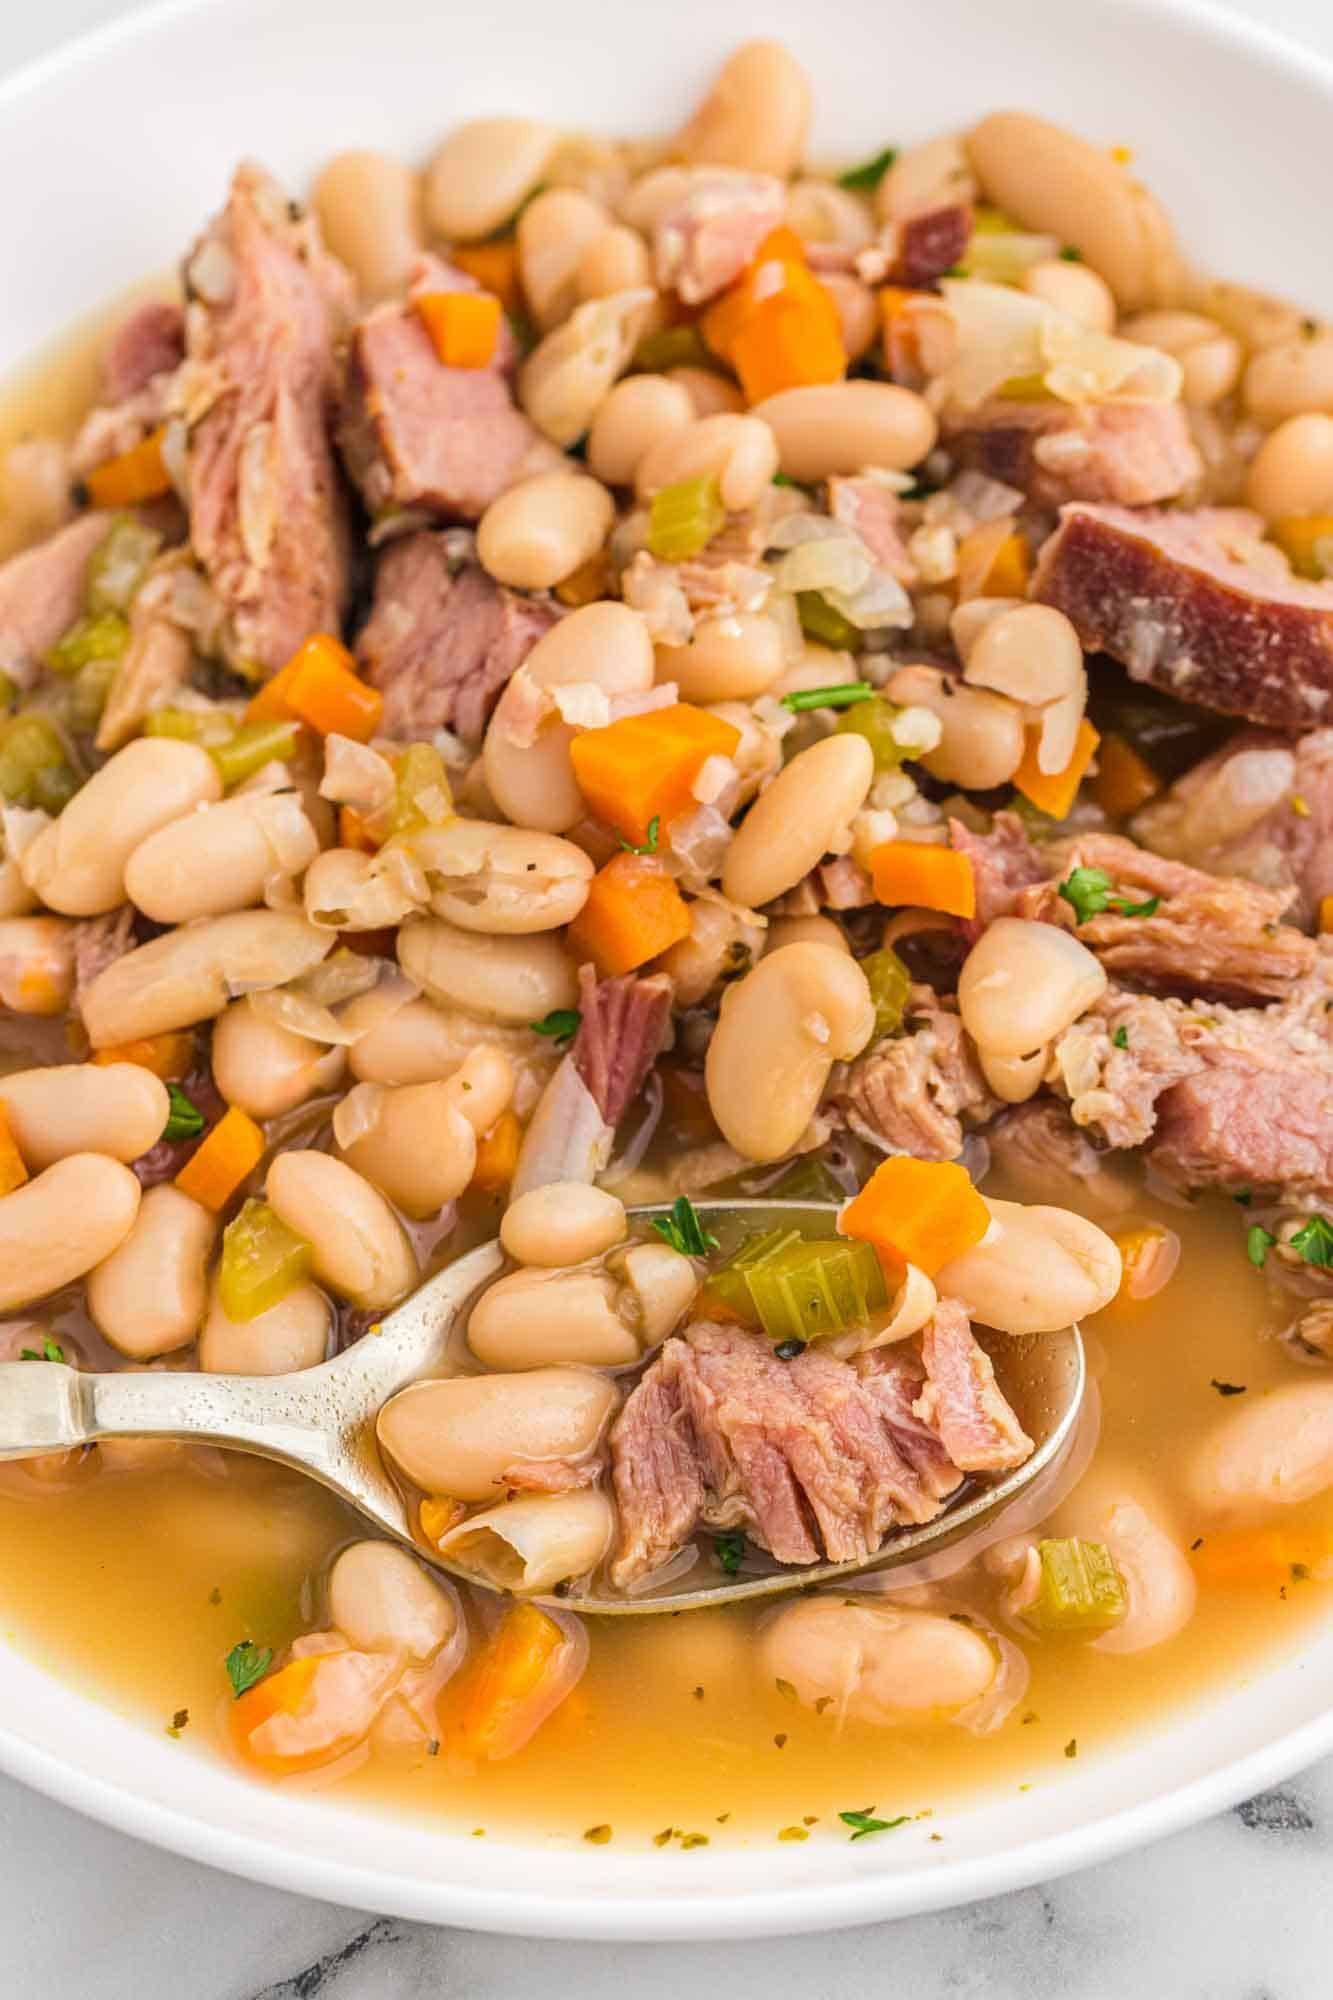 Ham and bean soup served in a white bowl with a spoon.